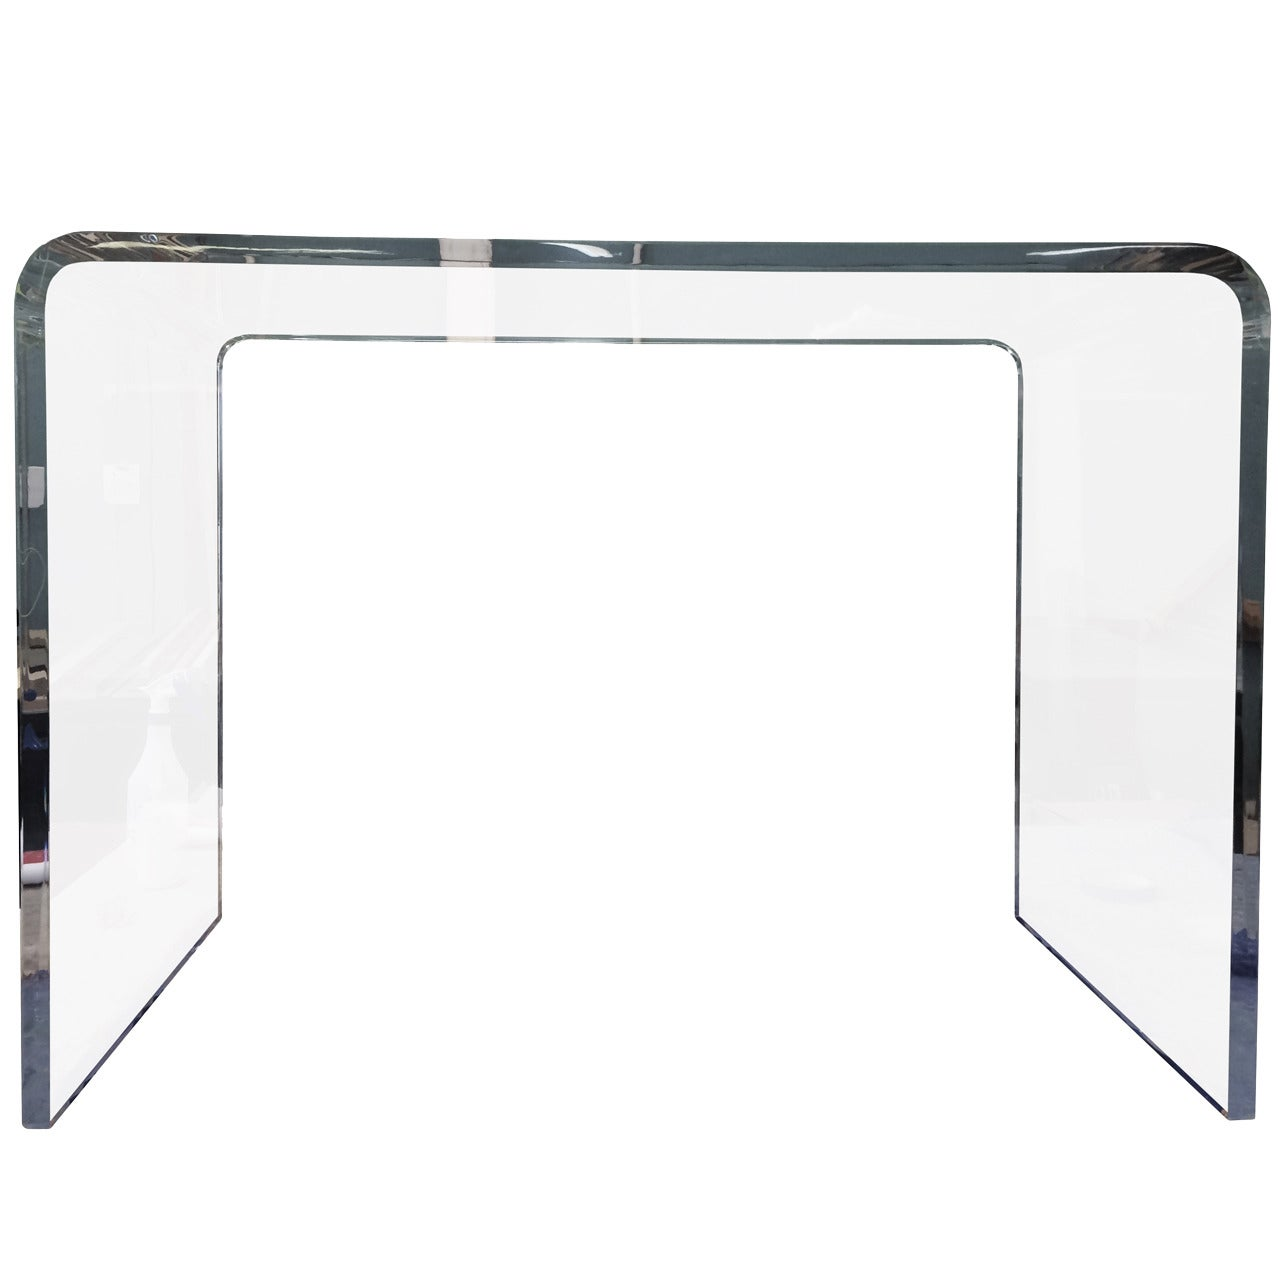 Waterfall Style Console Table in Lucite and Bullnose Edges